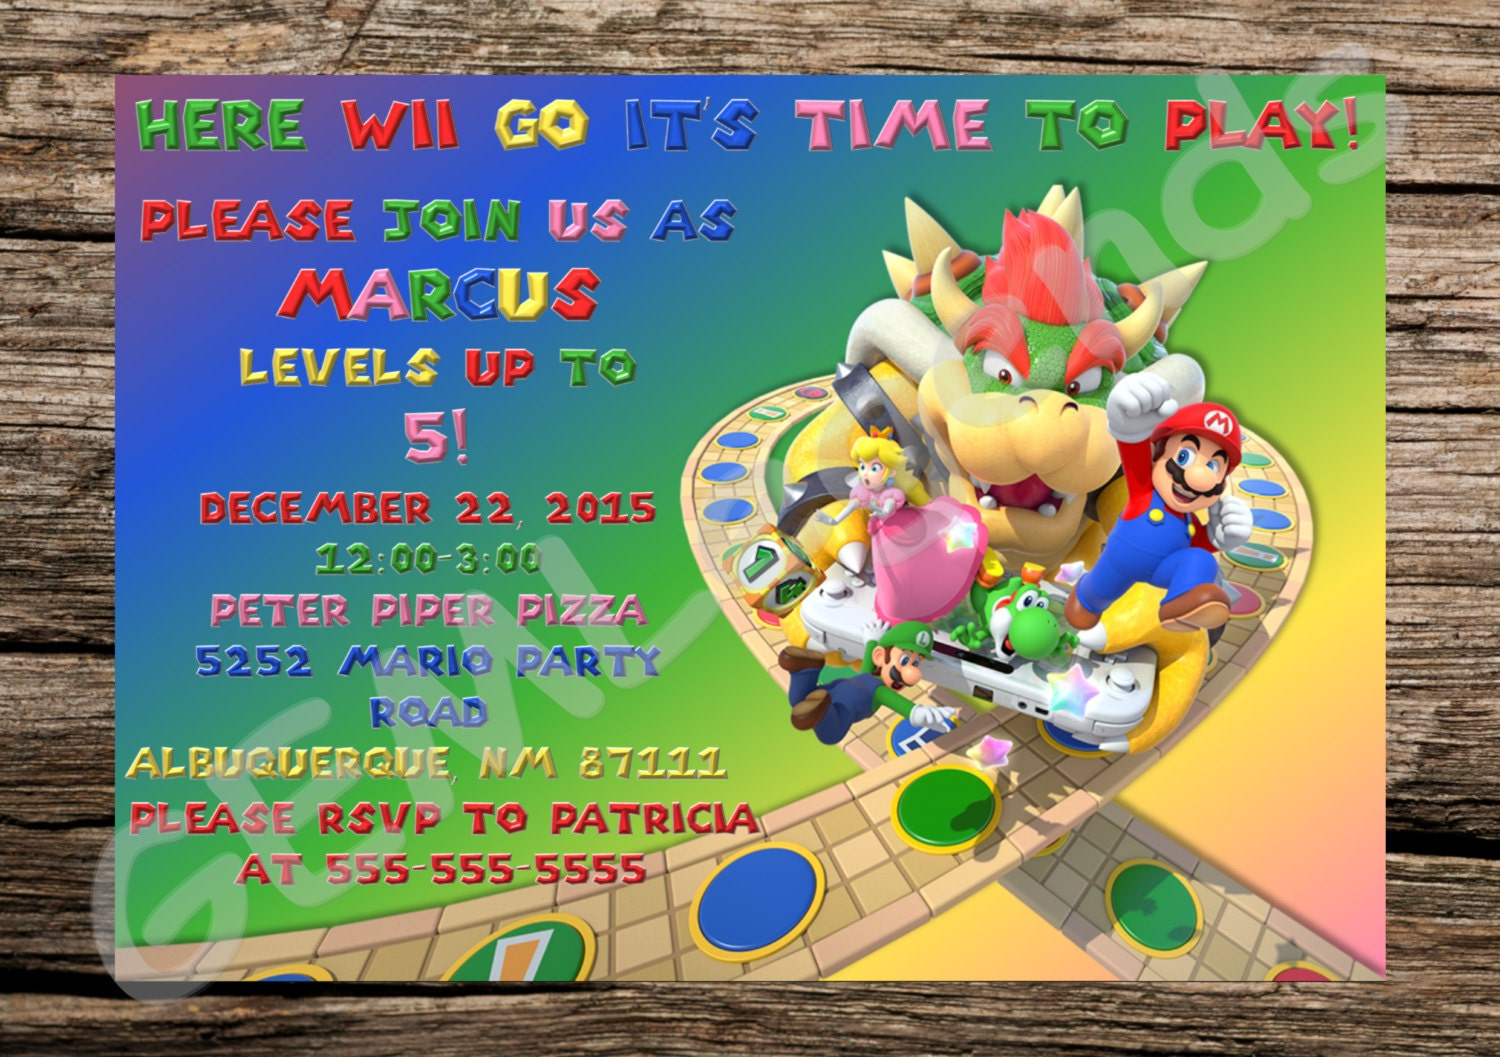 Mario Party Invitations Mario Party Invites Mario Party – Mario Party Invites